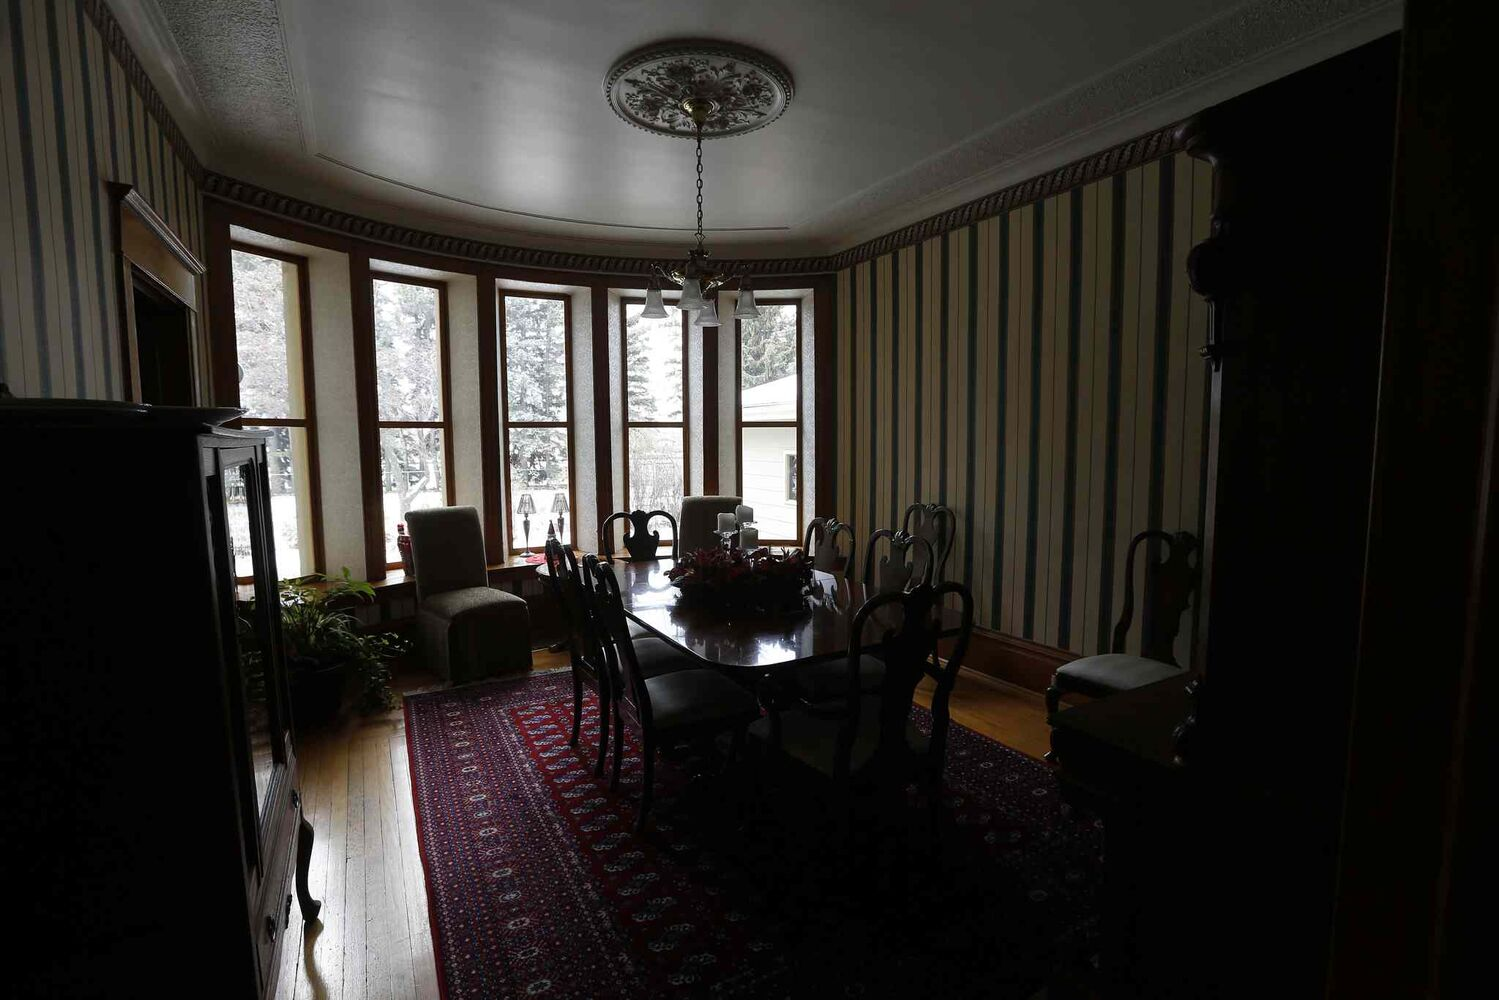 Large bay windows in the dining room face the backyard.